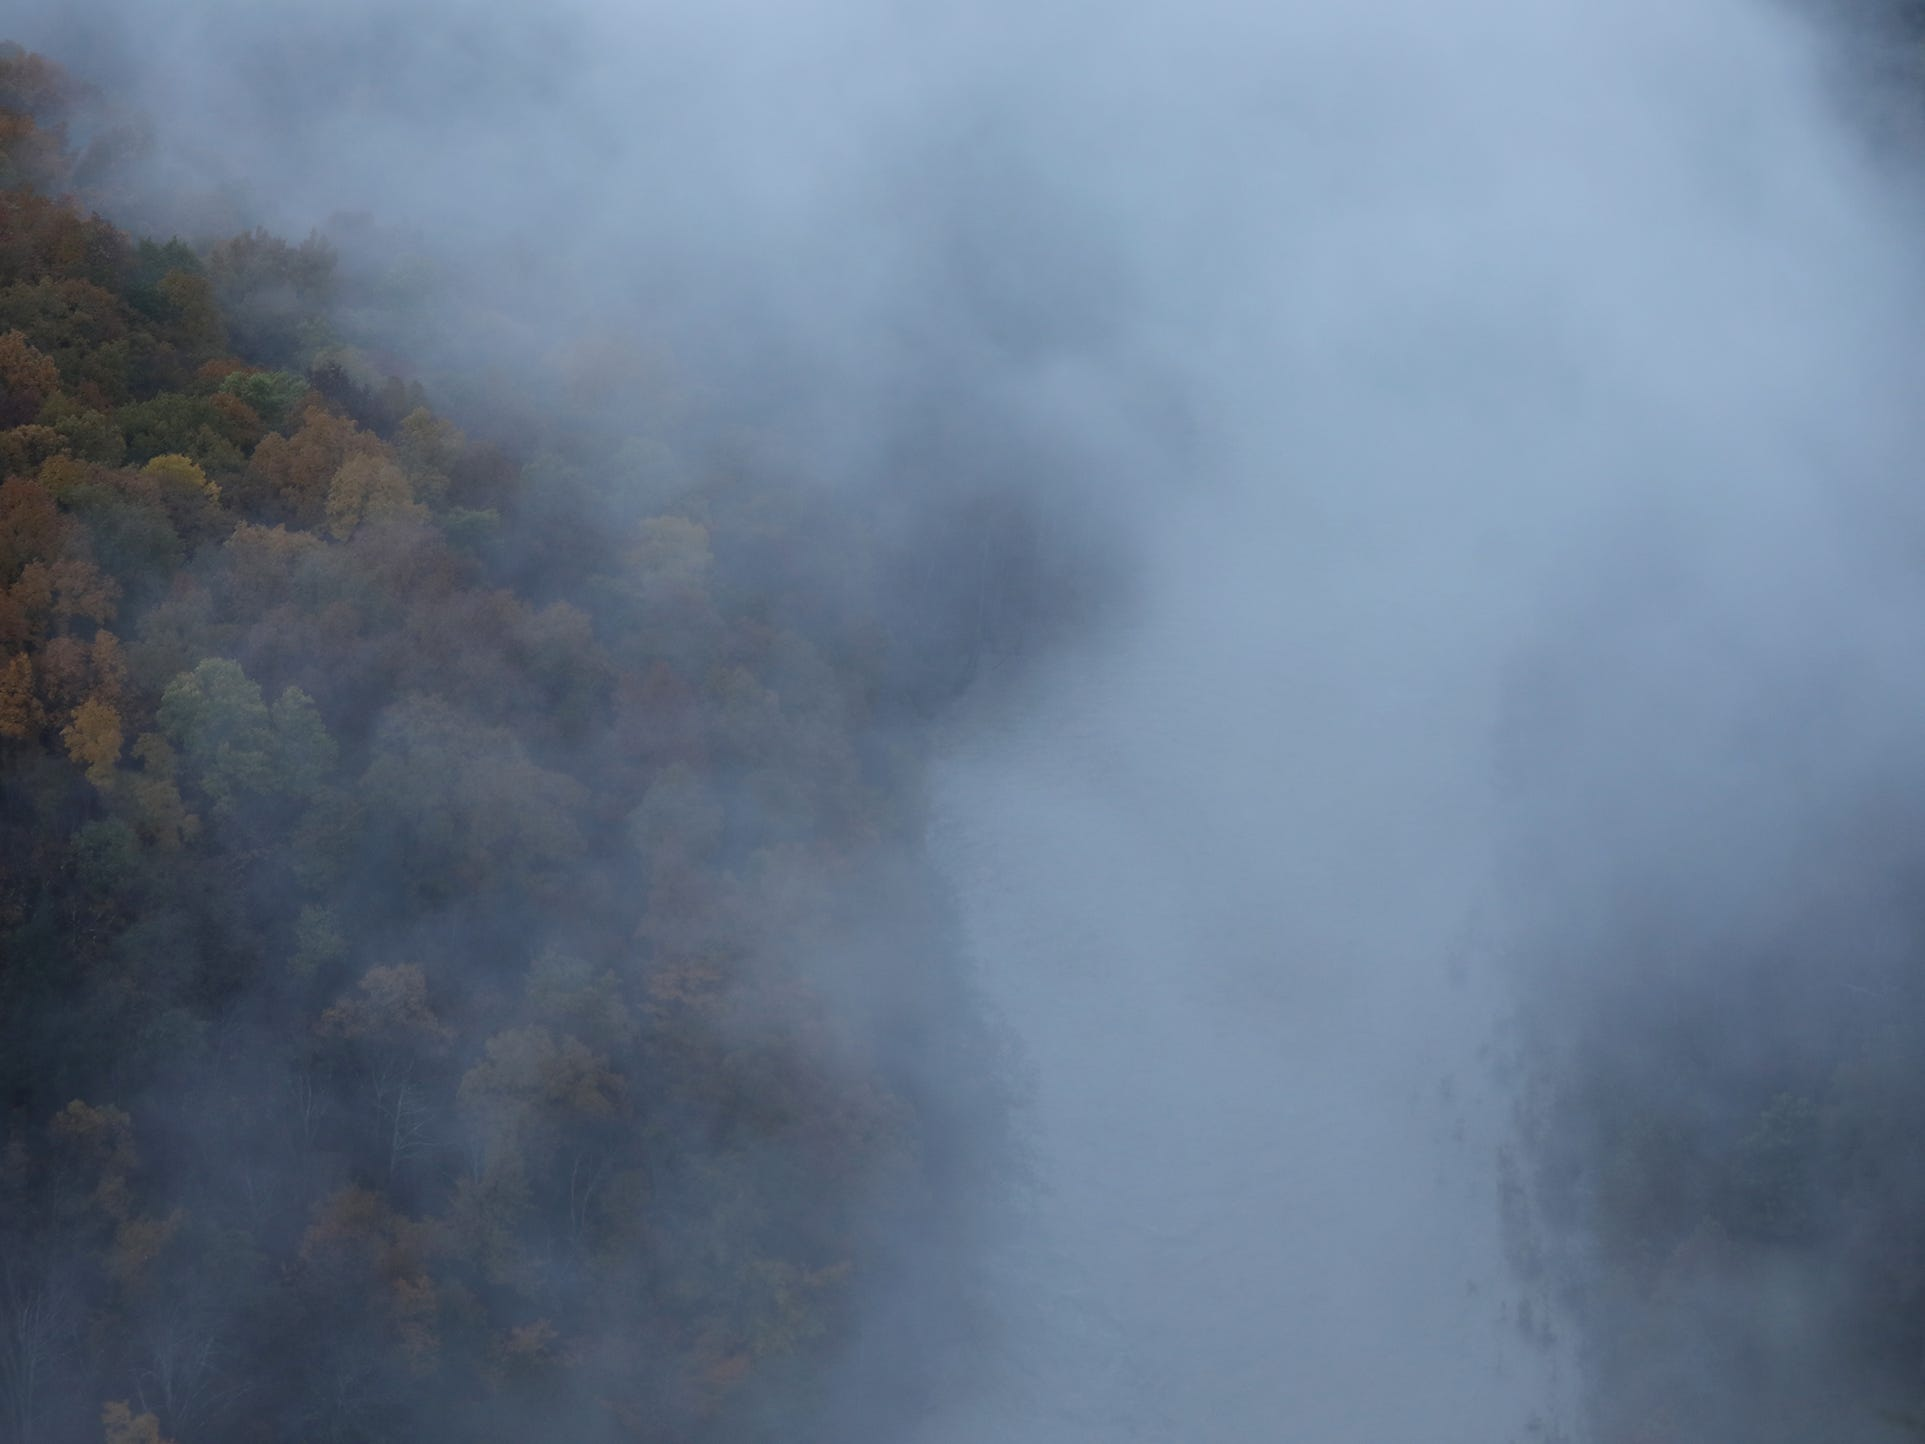 Fog rises off the Genesee River at Letchworth State Park.